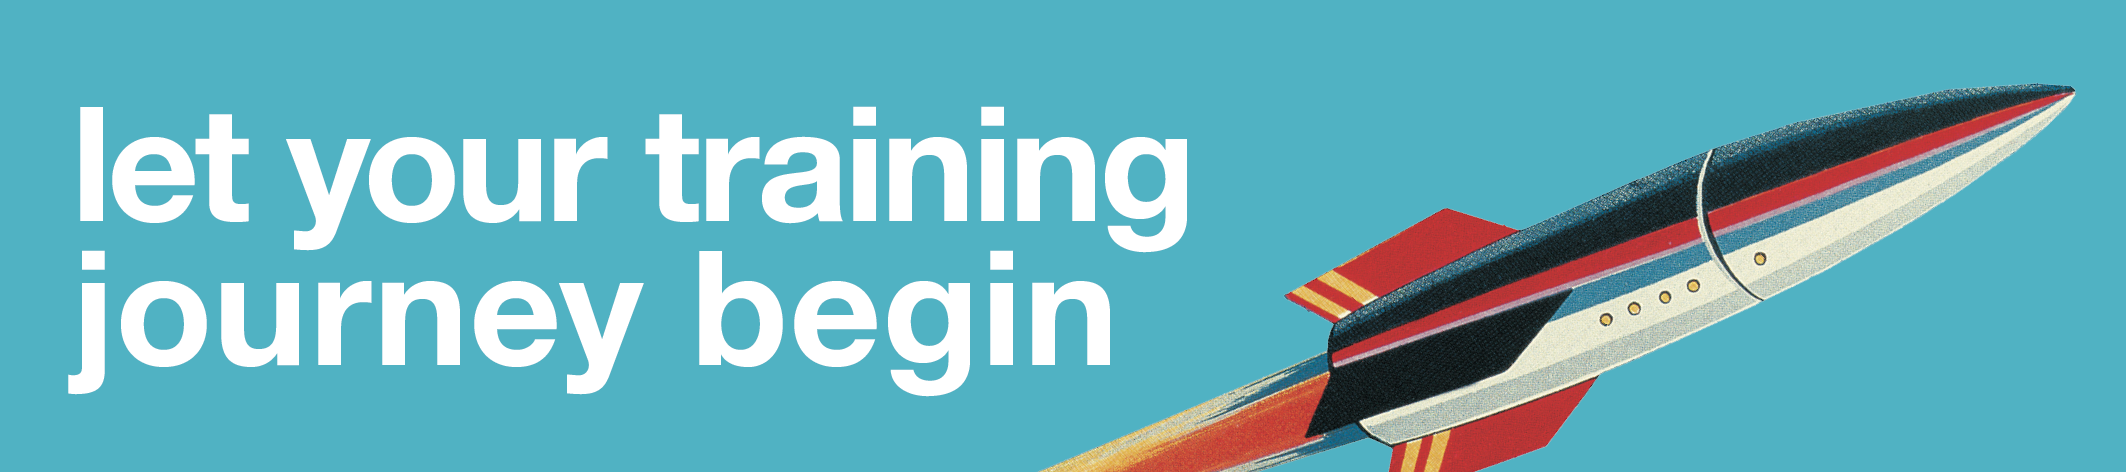 Training Resource Centre - Let your training journey begin